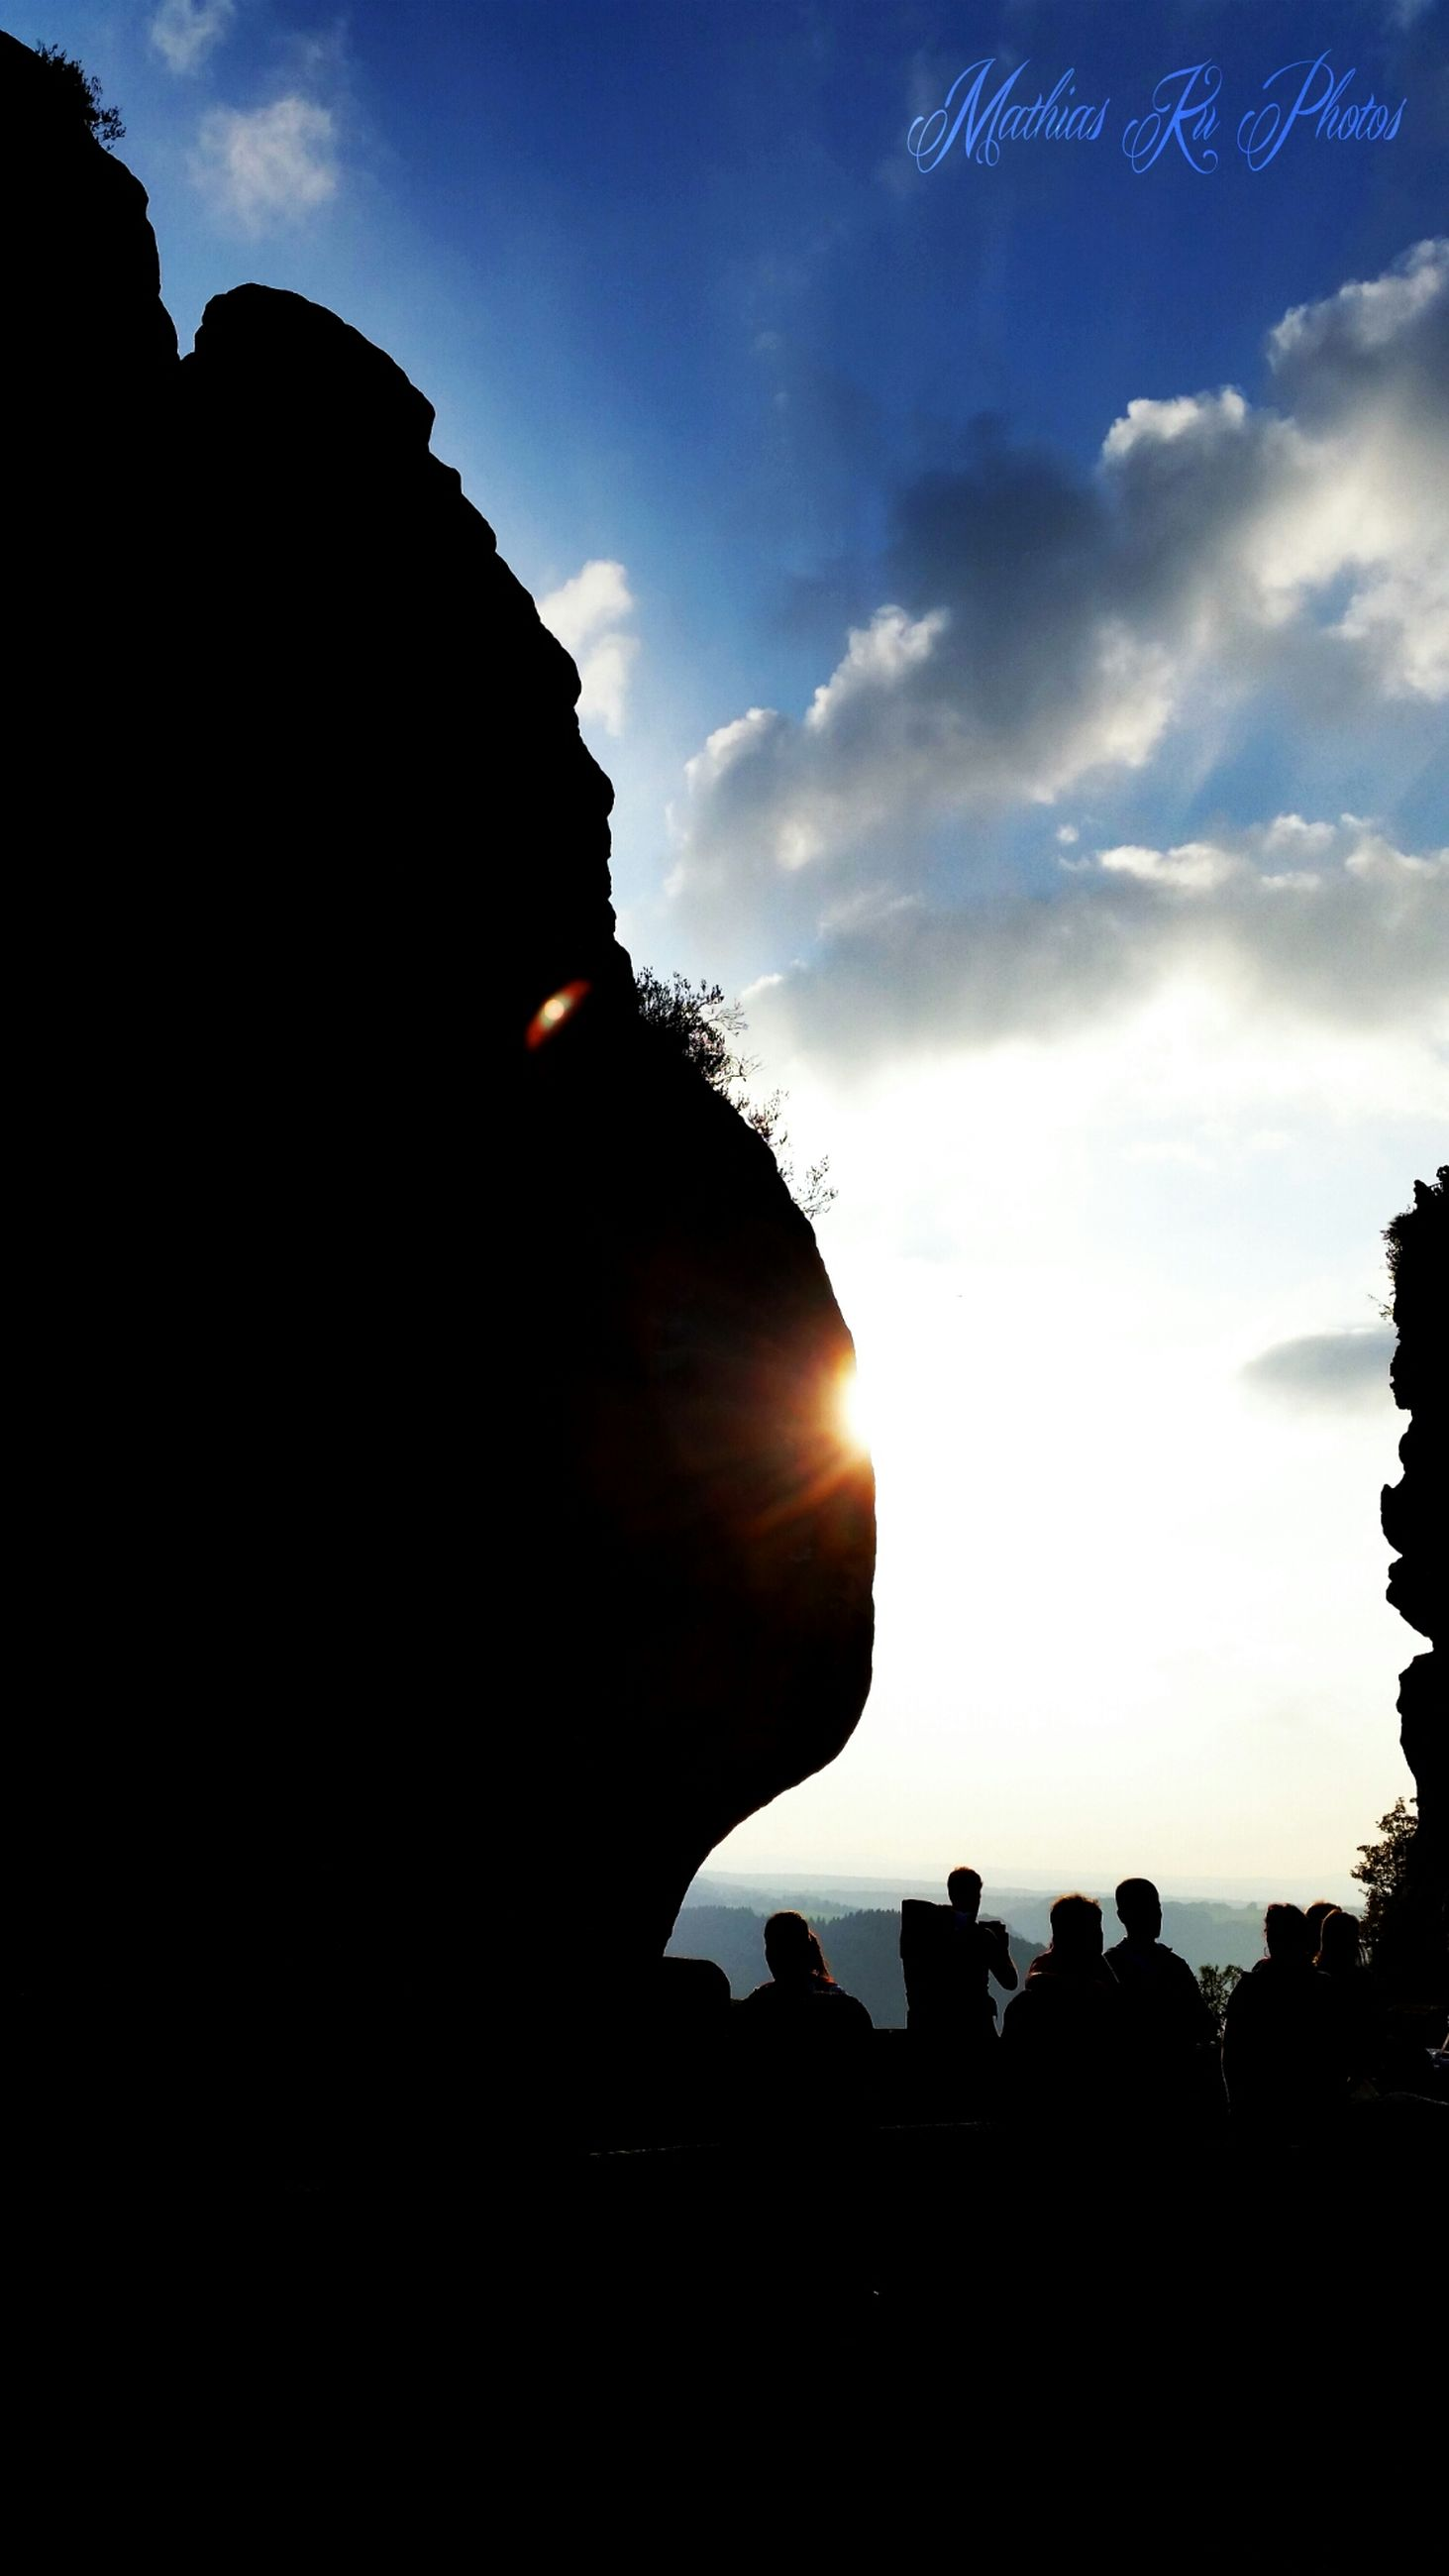 silhouette, sky, sunset, sun, building exterior, built structure, cloud - sky, architecture, sunlight, sunbeam, low angle view, cloud, mountain, nature, dark, scenics, lens flare, dusk, beauty in nature, outdoors